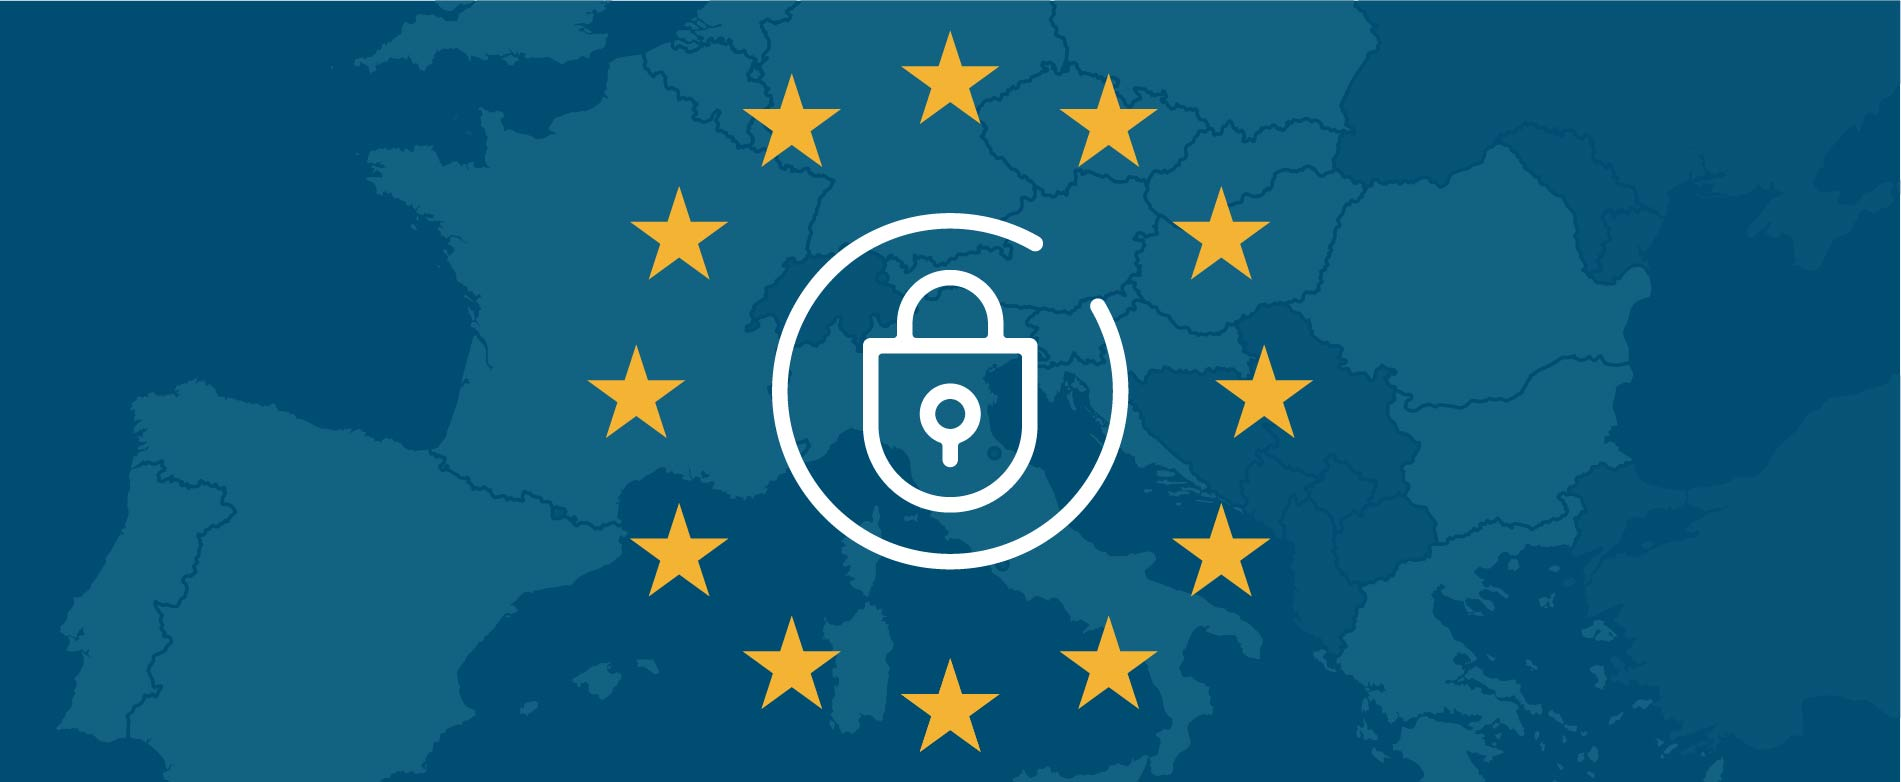 Learn GDPR basics with this information.